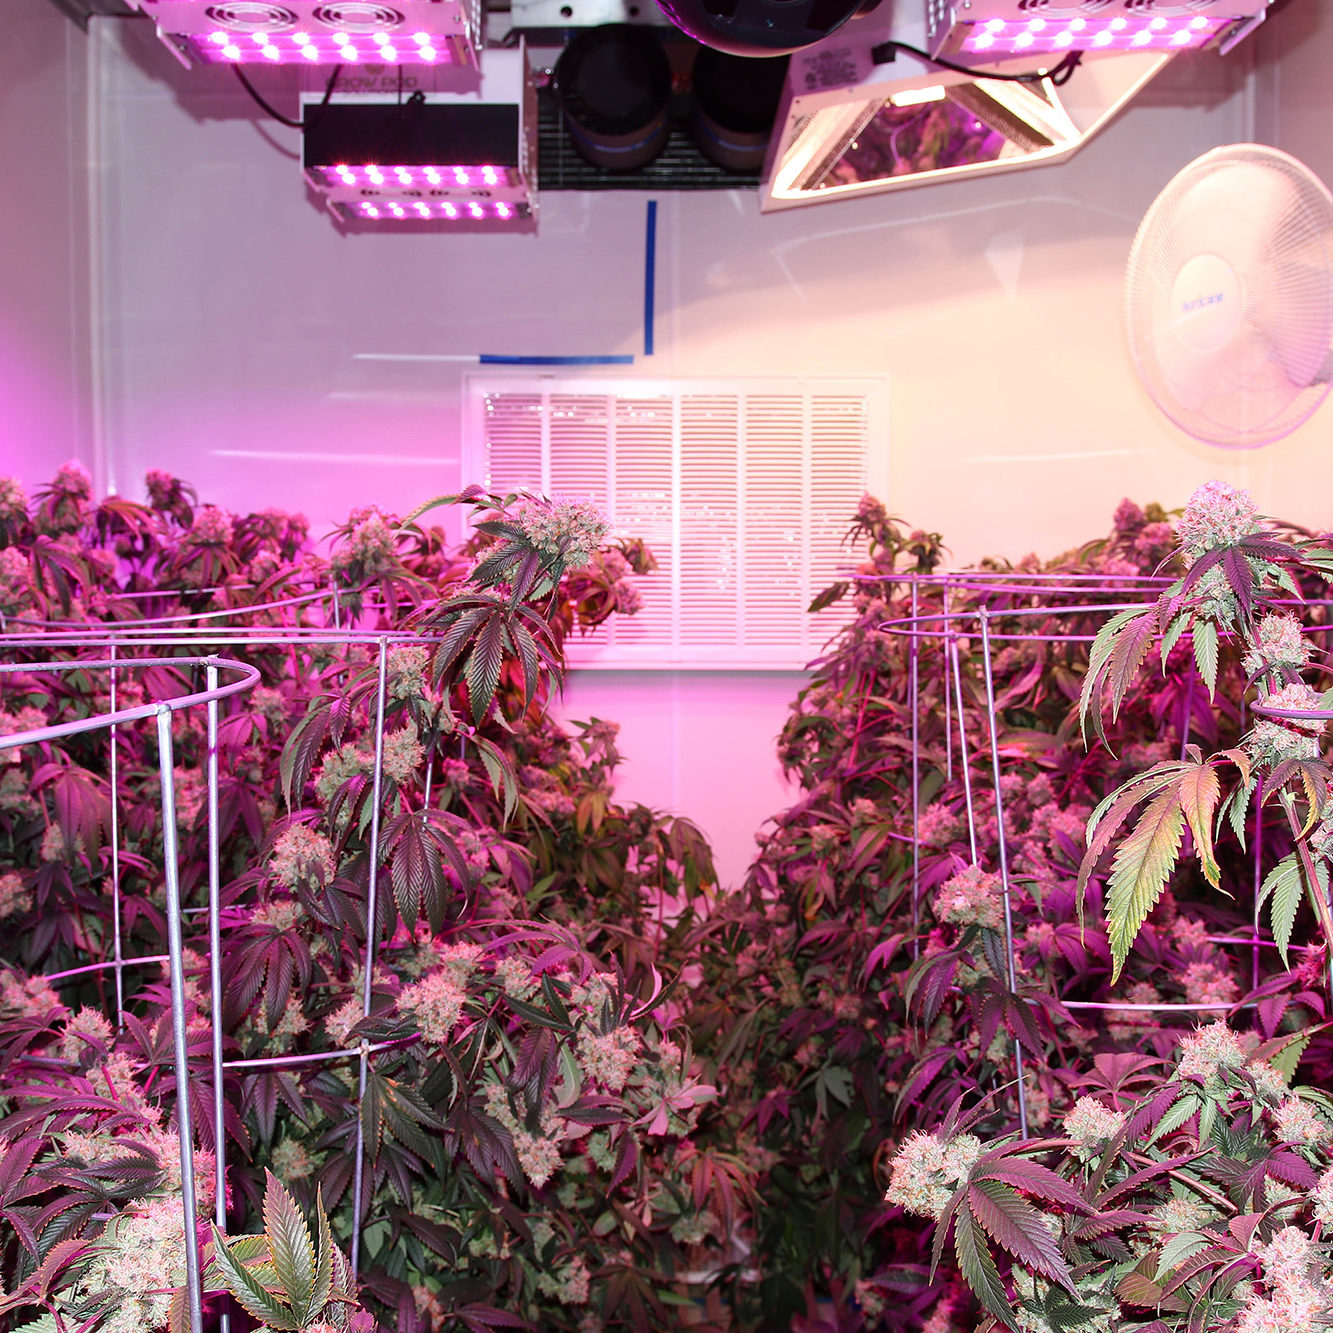 Future of Marijuana Grow Rooms in Containers